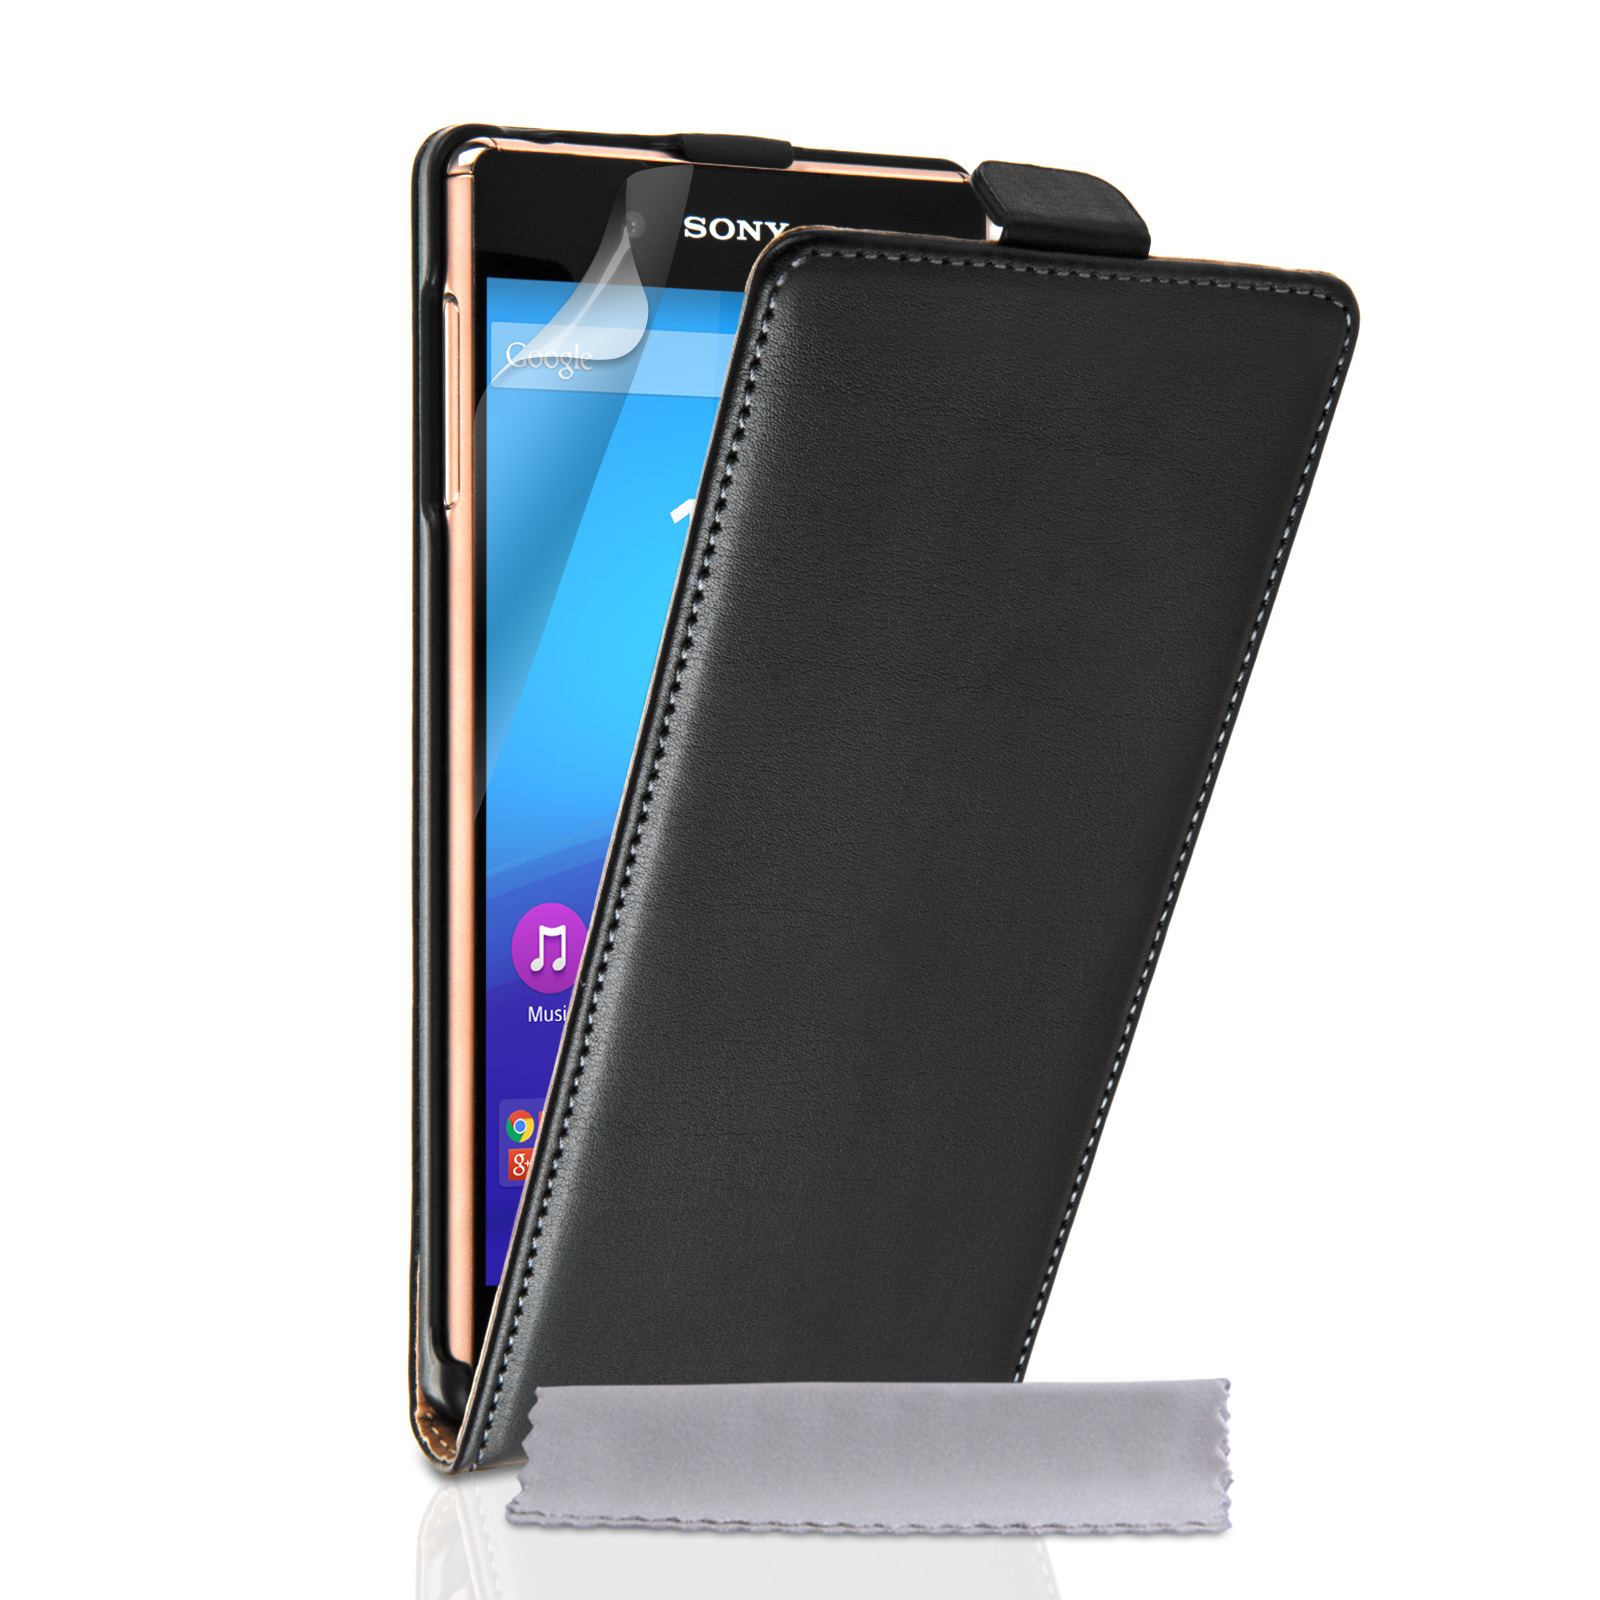 Caseflex Sony Xperia Z3+ Real Leather Flip Case - Black